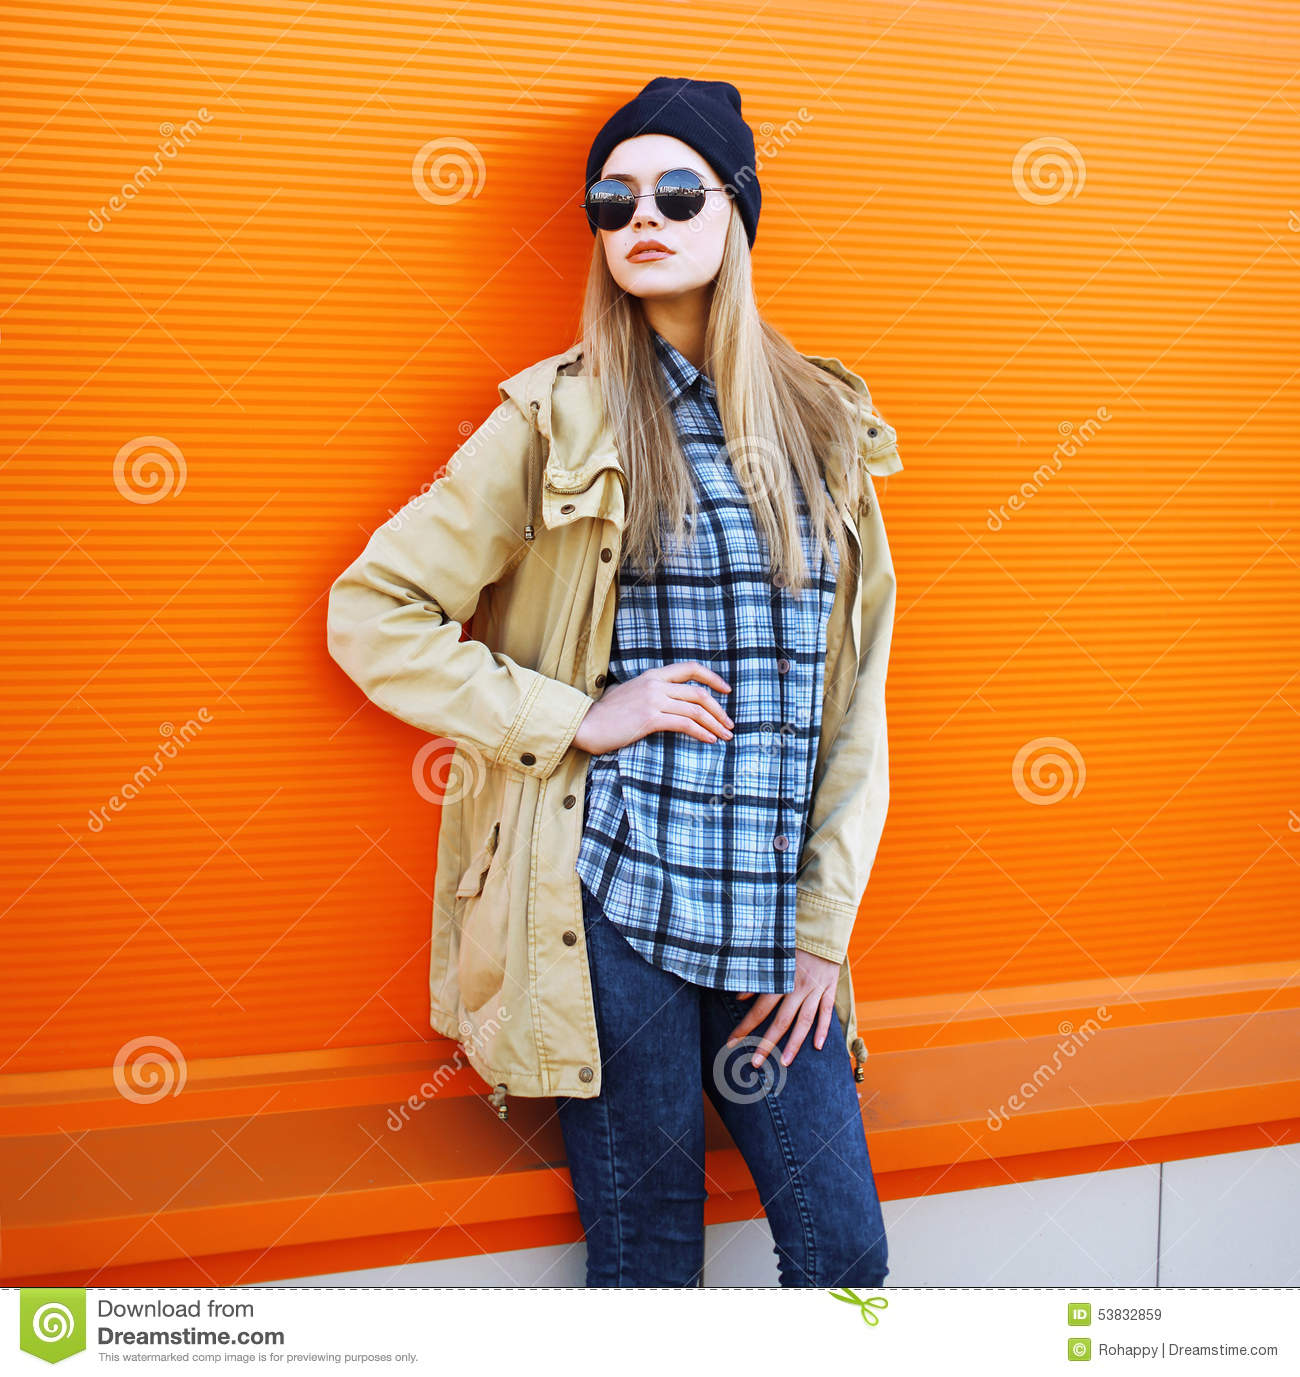 Hipster Fashion Photography: Outdoor Fashion Portrait Of Stylish Hipster Cool Girl